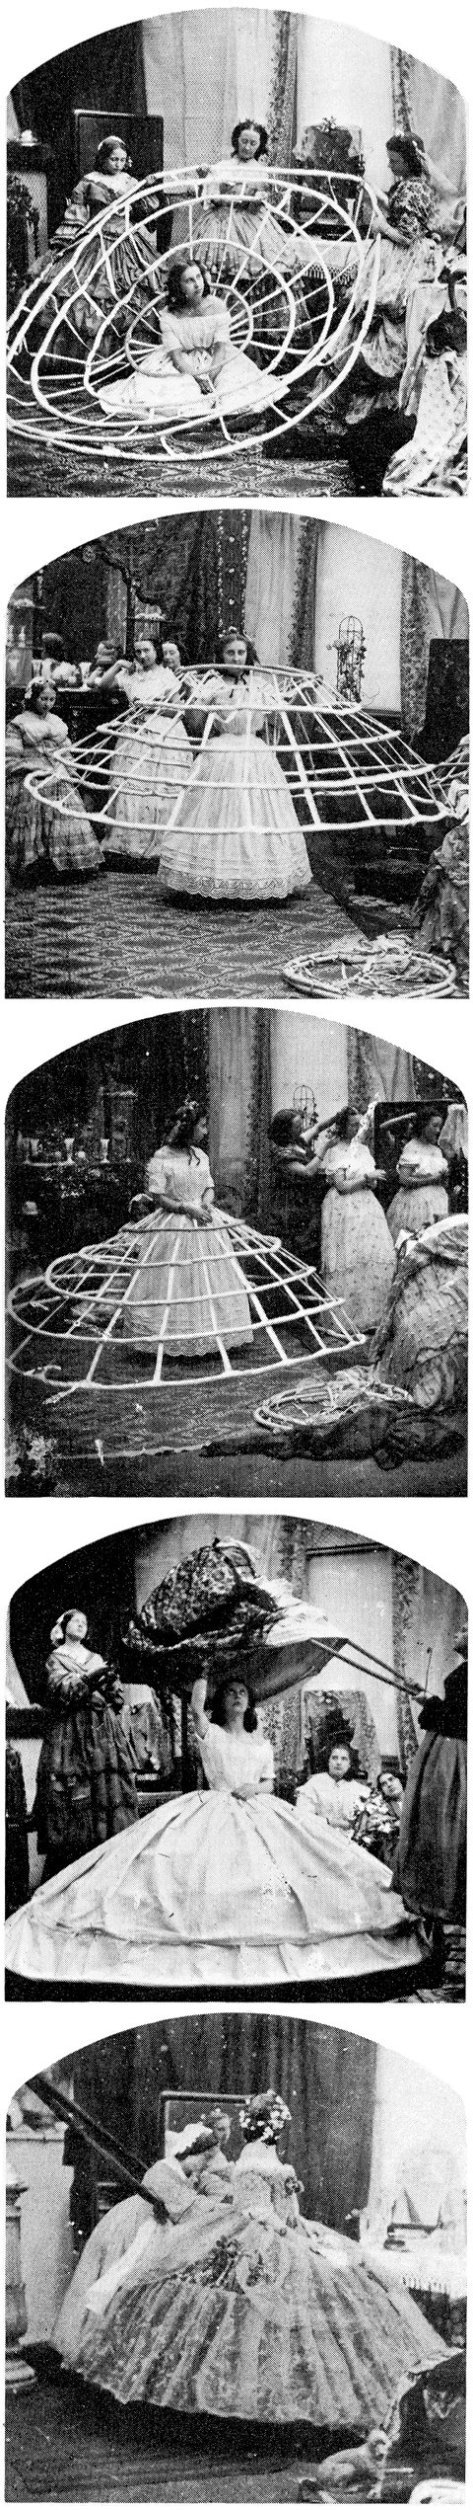 Crinoline-joke-staged-photo-sequence-ca1860